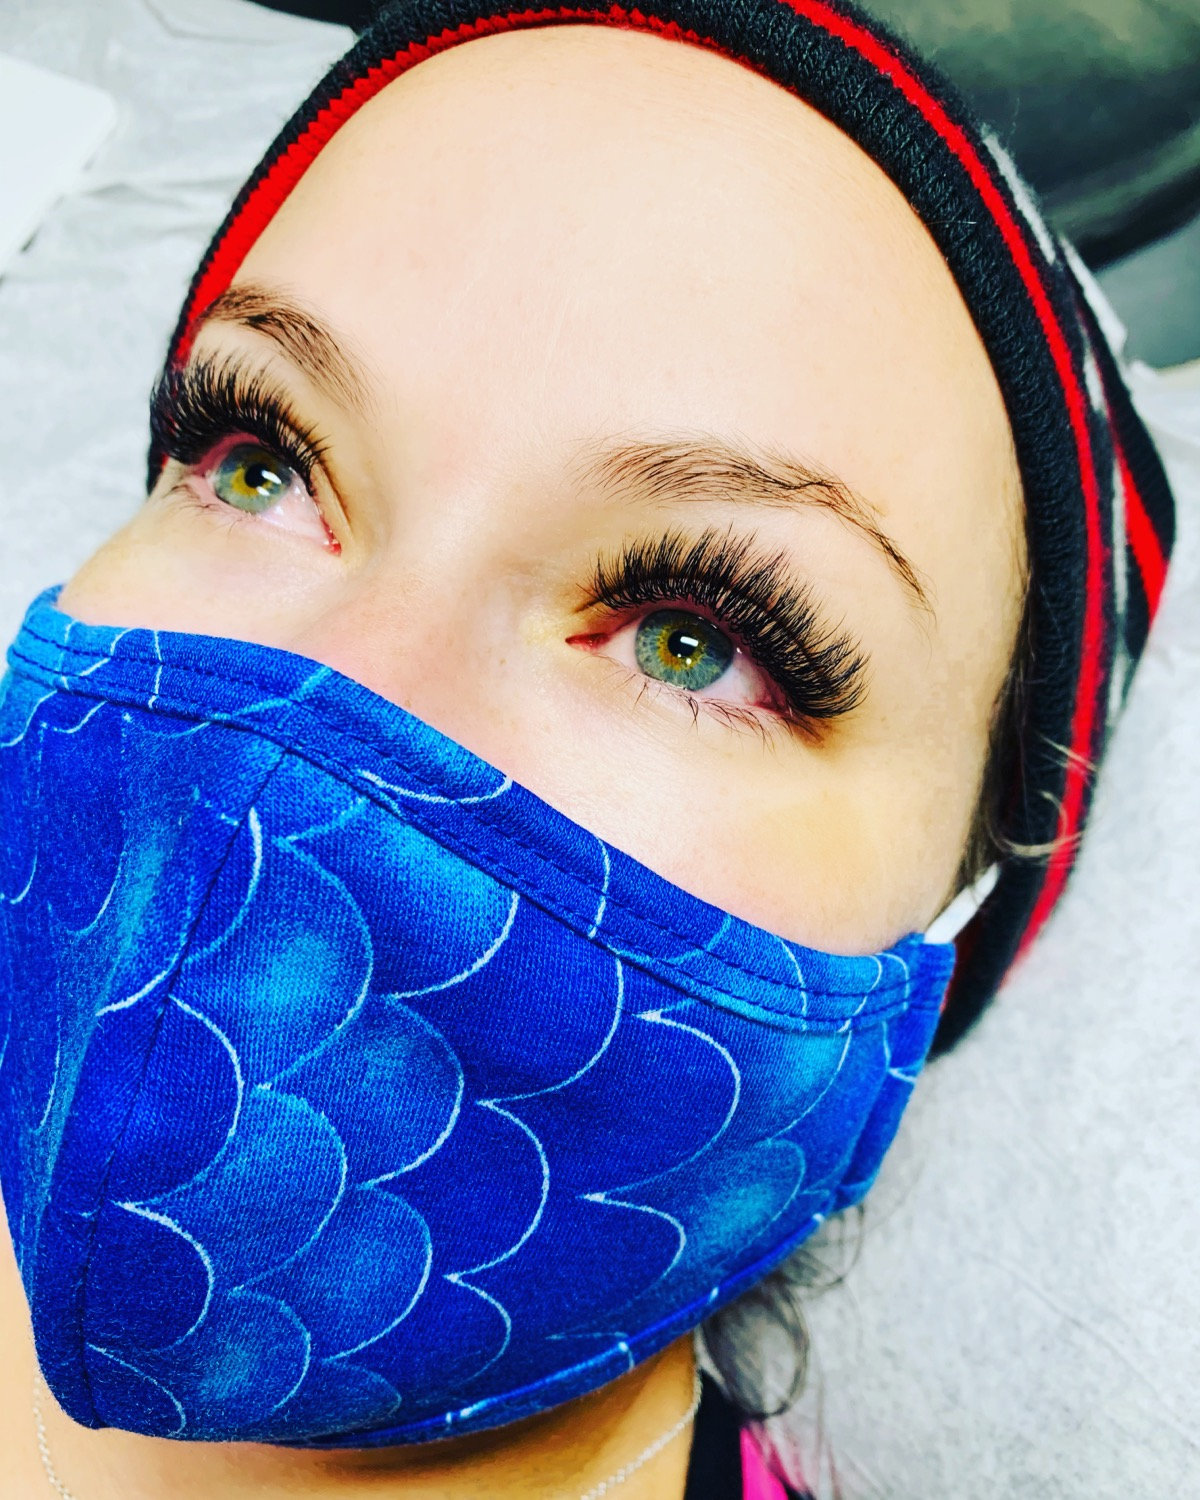 Classic Lash Extensions Fill 2-3 weeks